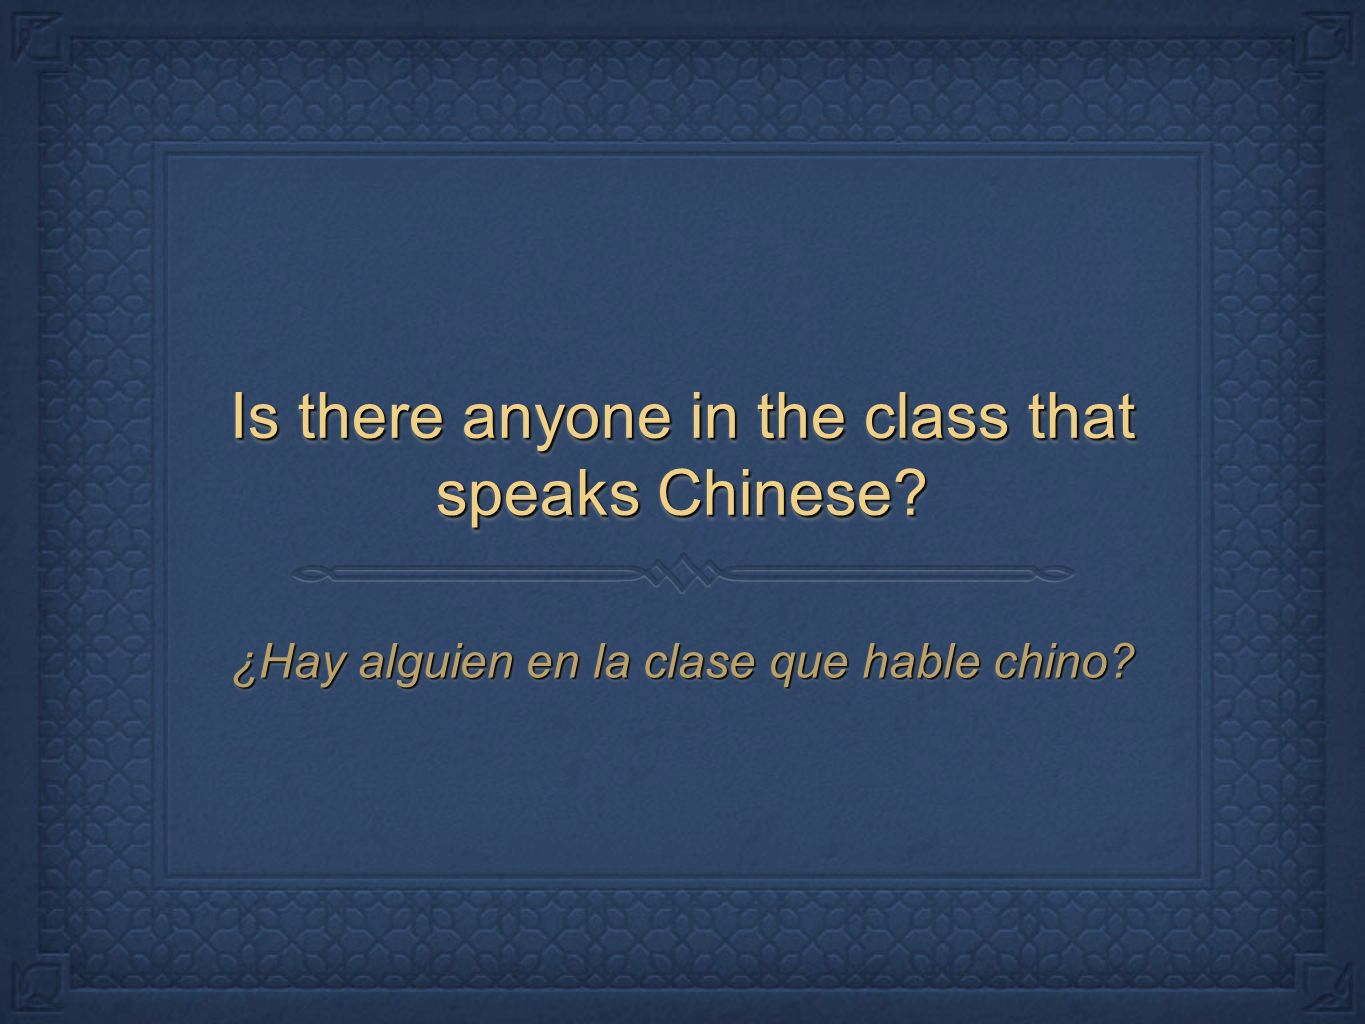 Is there anyone in the class that speaks Chinese